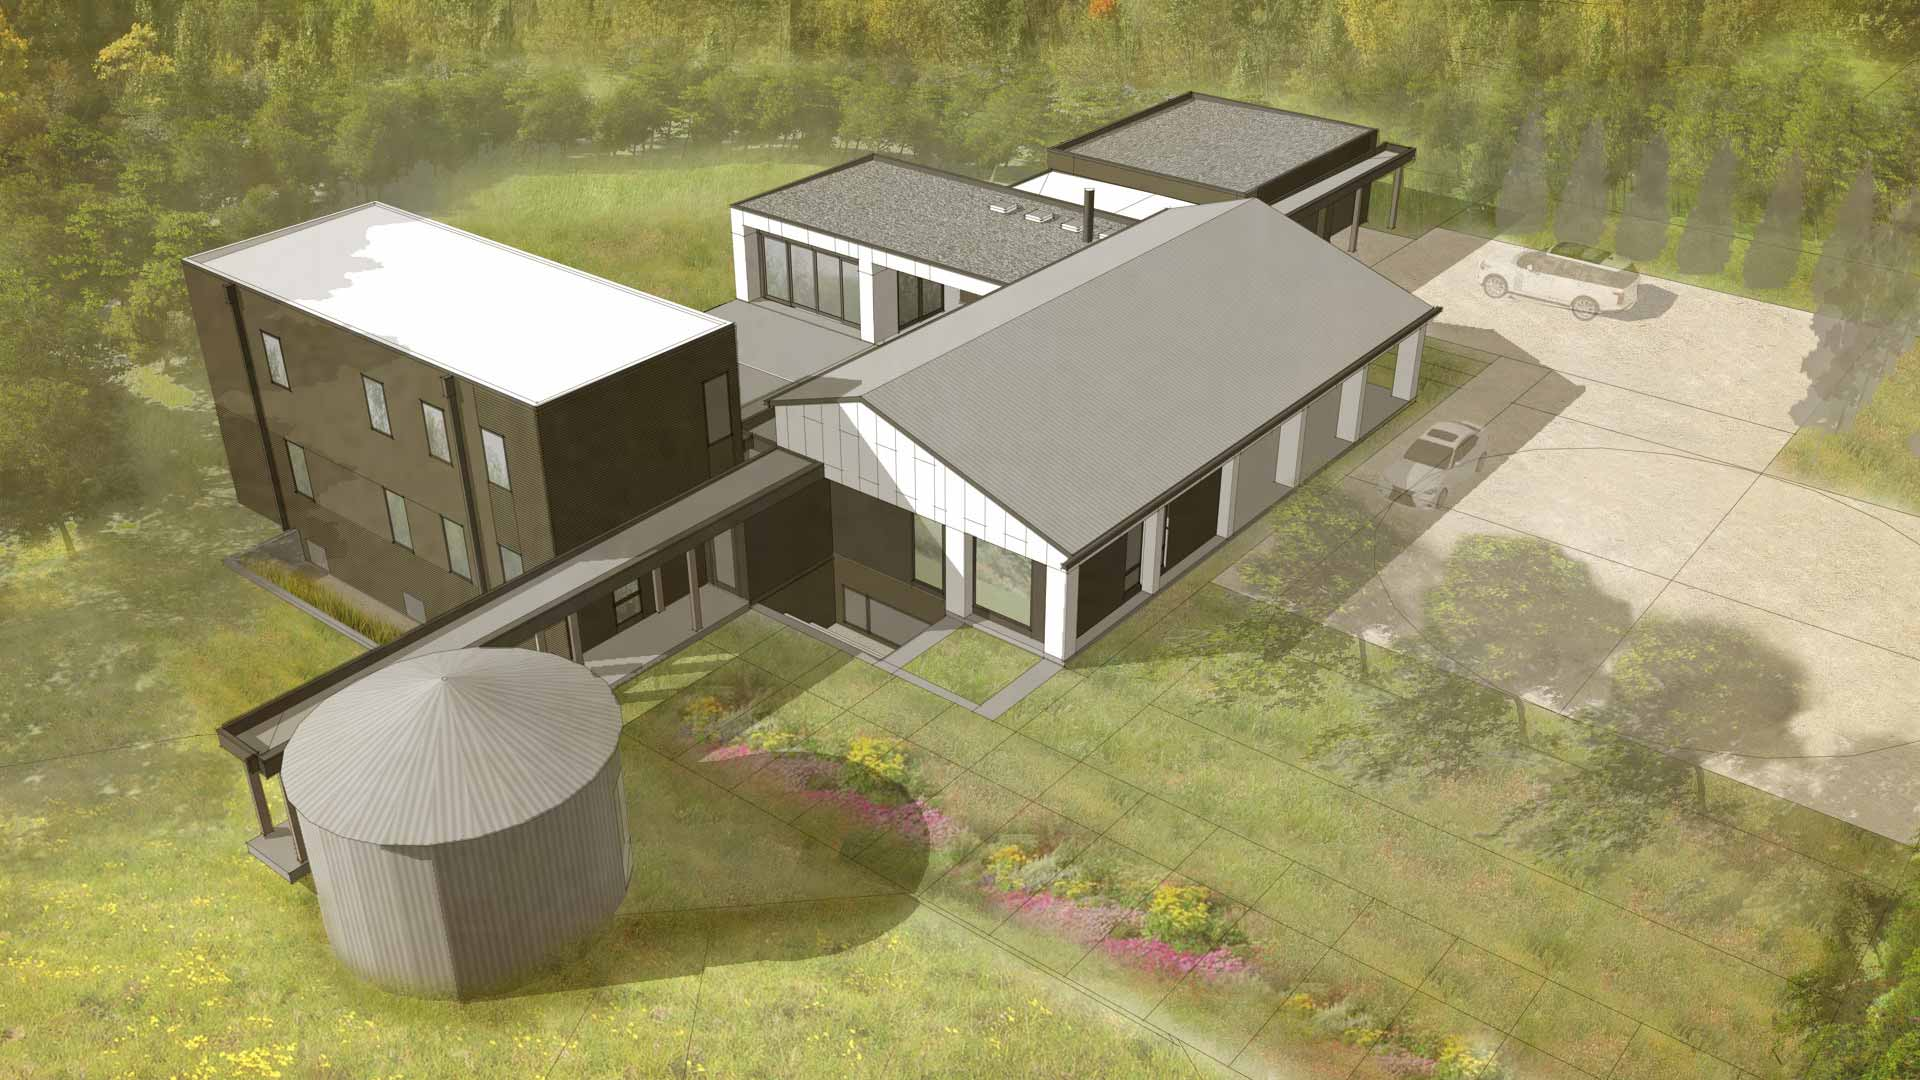 New Modern House Ditch - 3D Aerial View - HAUS Architecture, Christopher Short, Indianapolis Architect